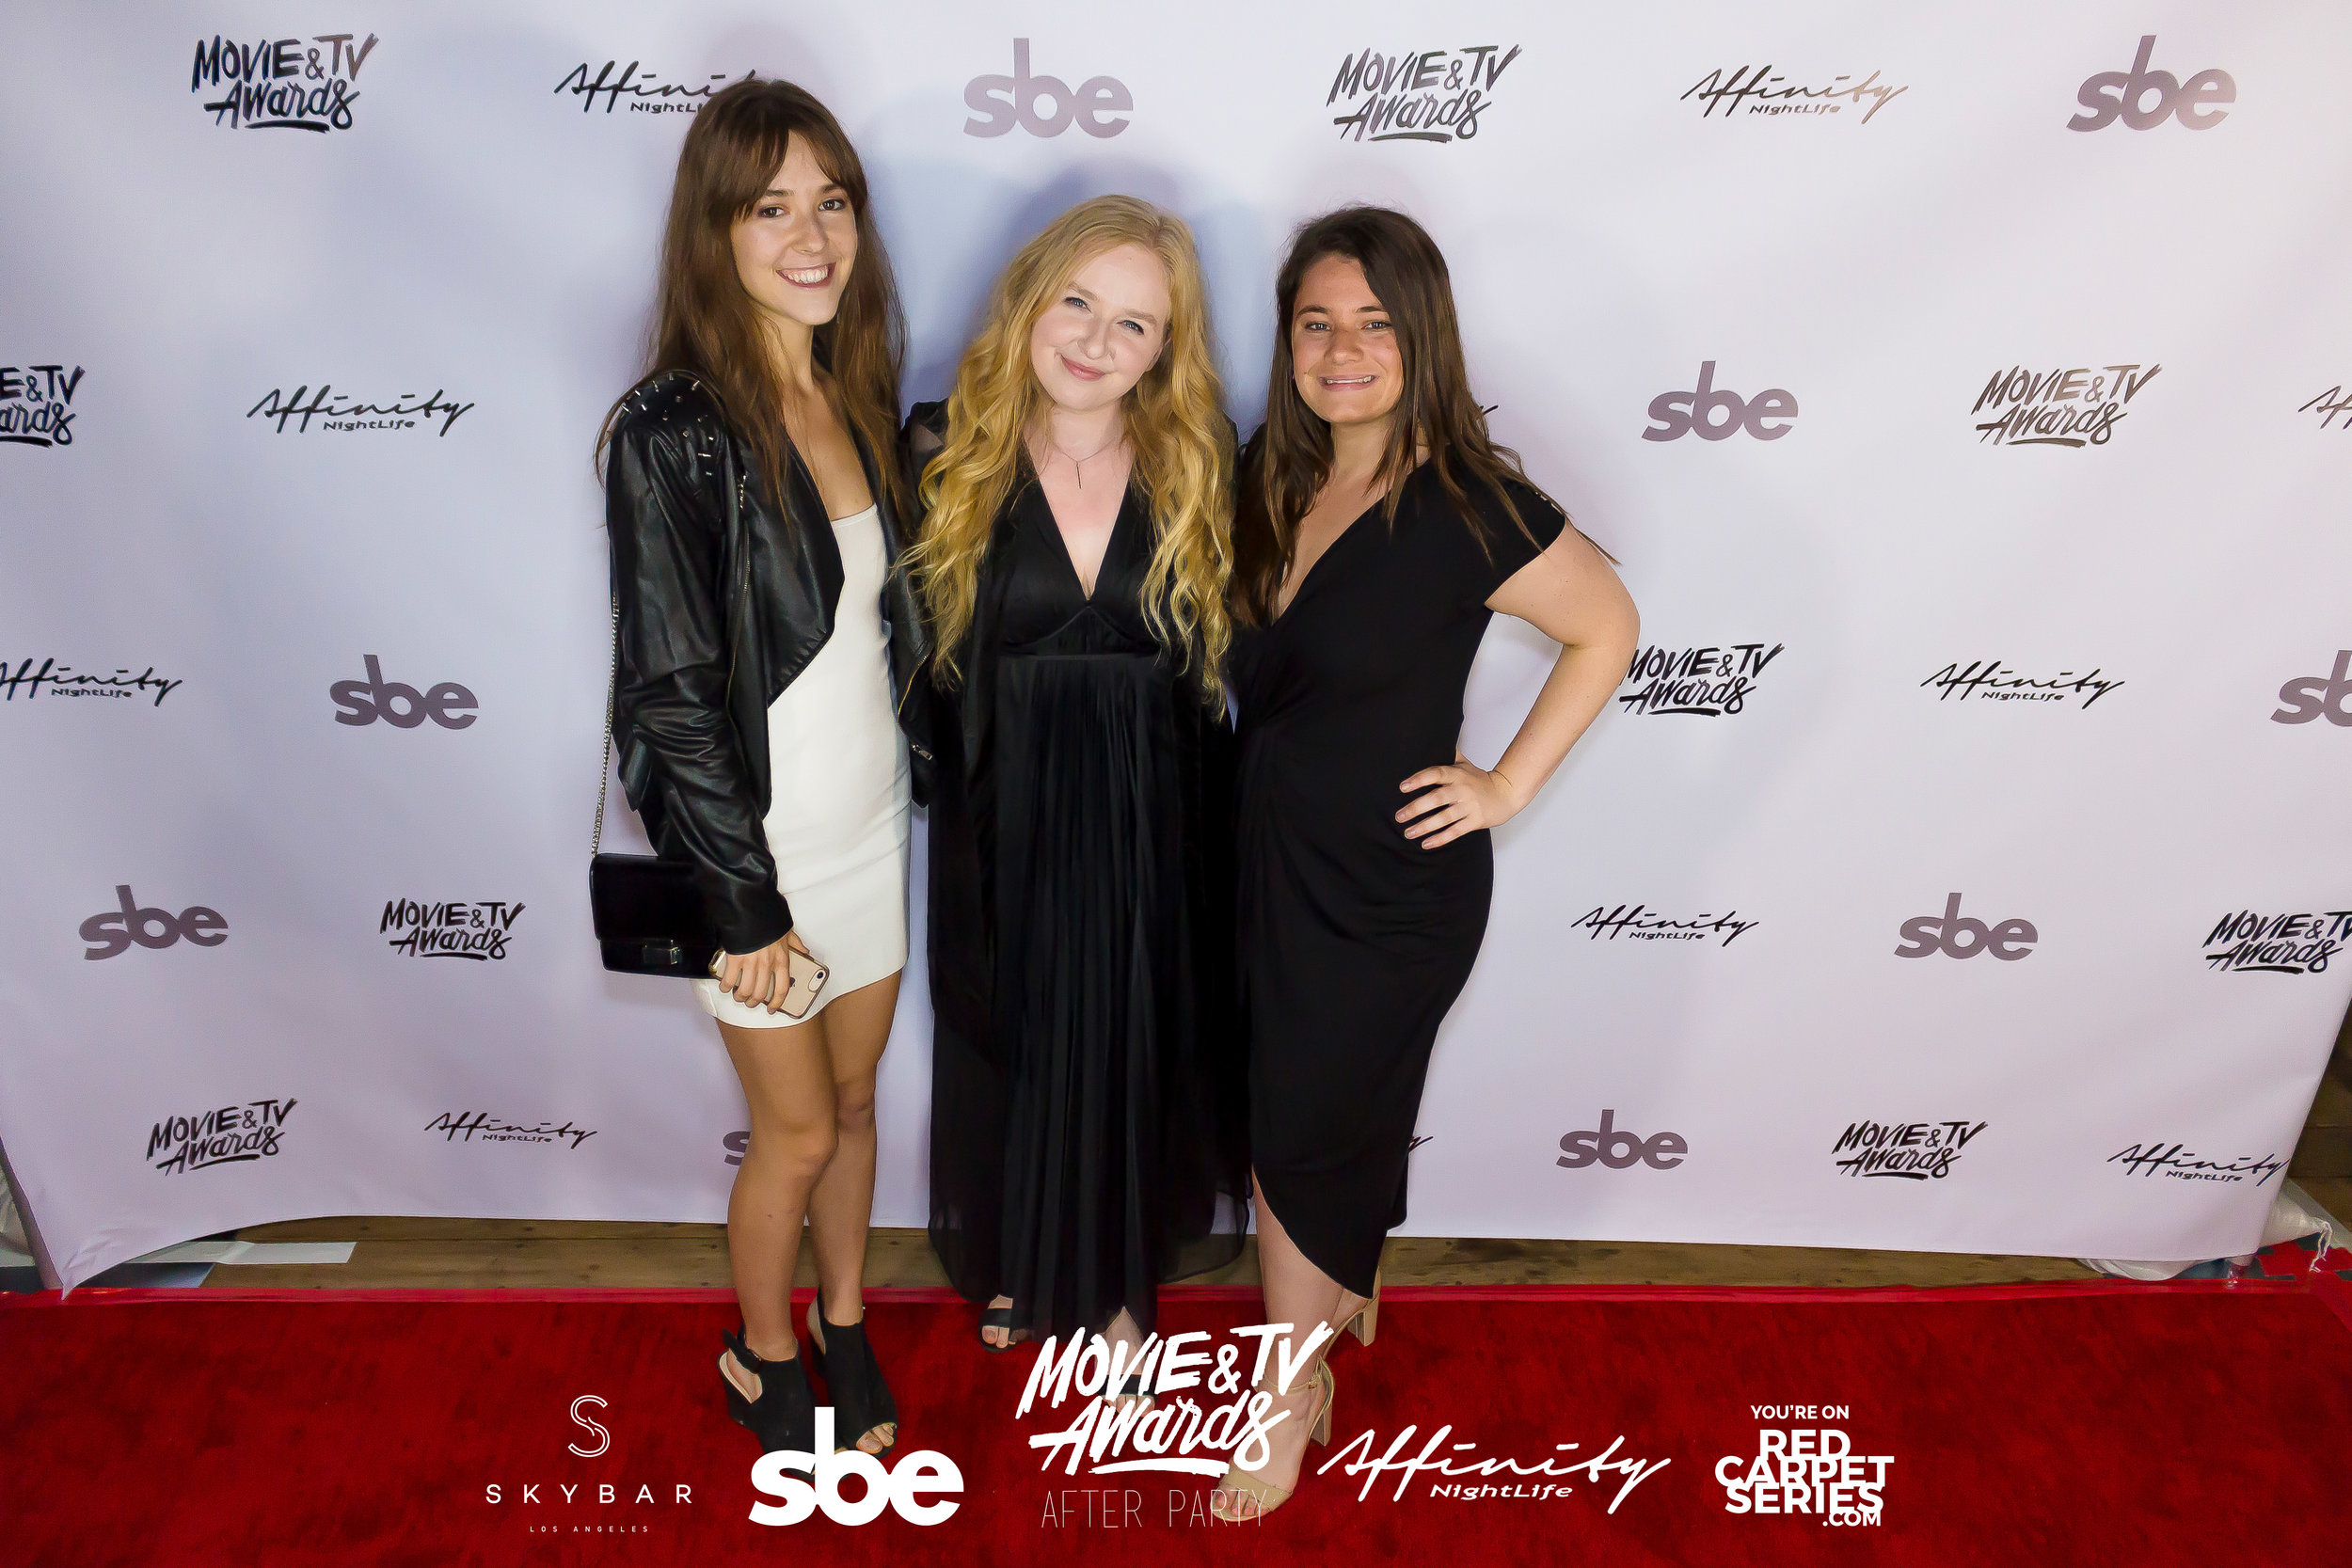 Affinity Nightlife MTV Movie & TV Awards After Party - Skybar at Mondrian - 06-15-19 - Vol. 2_68.jpg